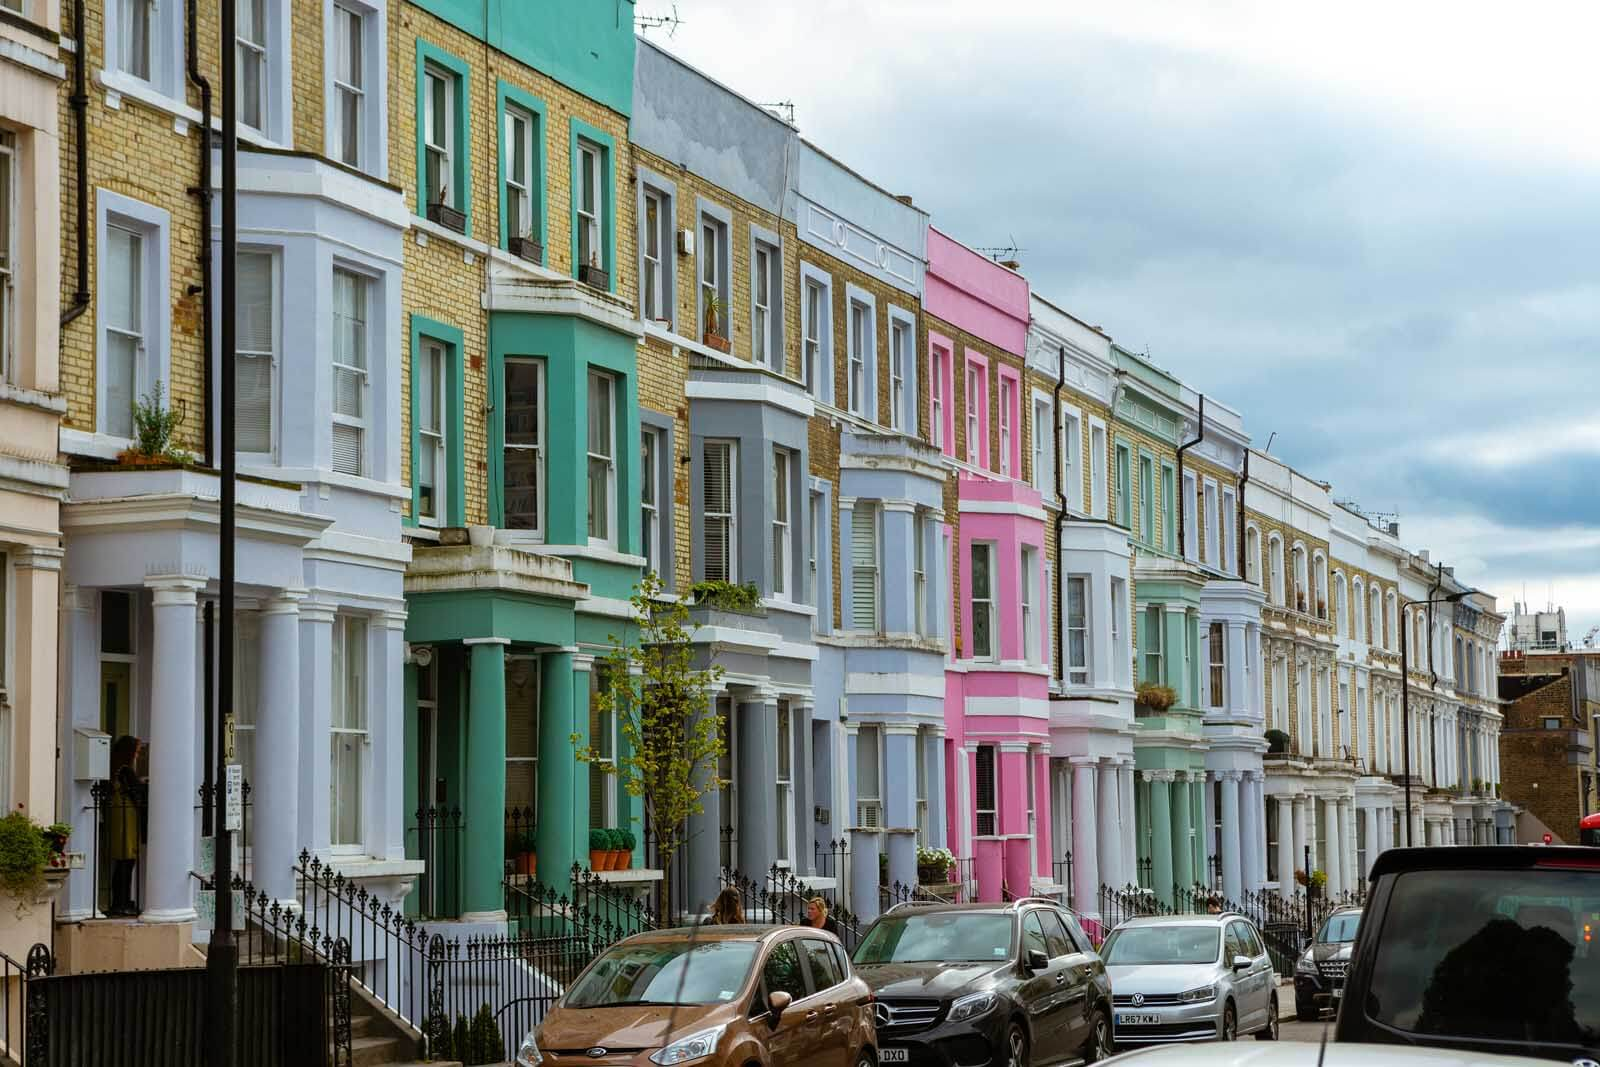 colorful row of homes on Westbourne Park Road in Notting Hill